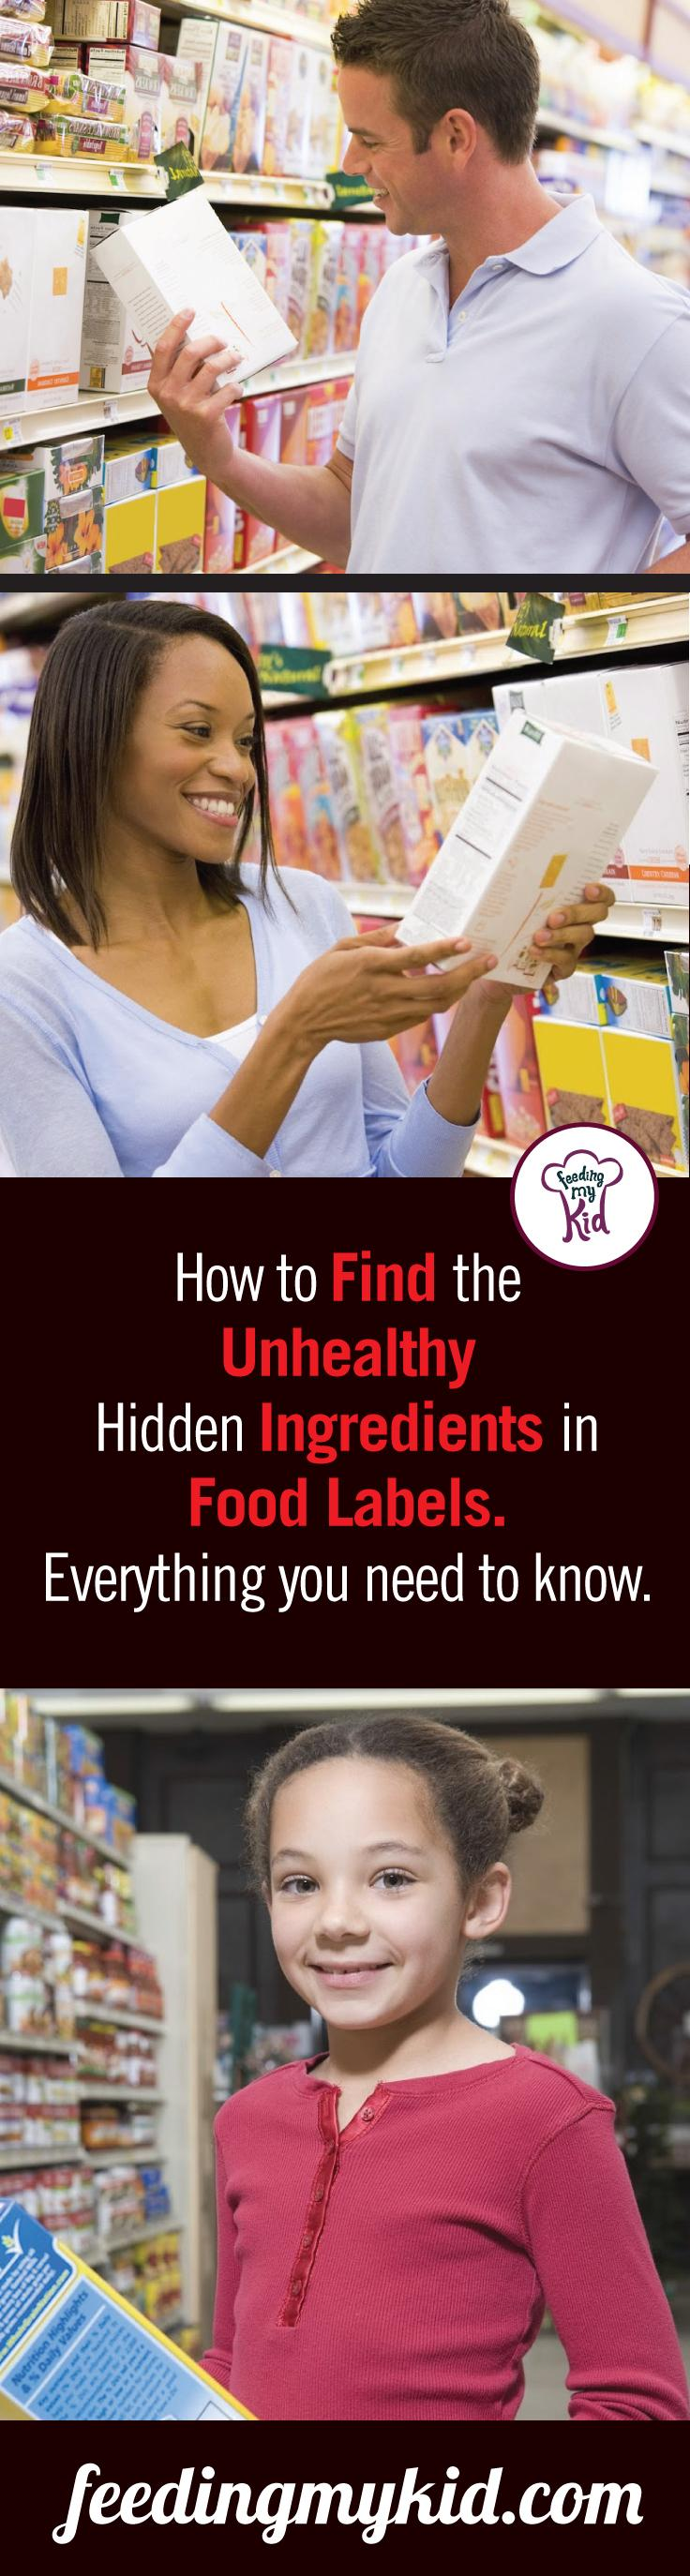 How to Find the Unhealthy Hidden Ingredients in Food Labels. Everything you need to know. - Reading food labels can be hard if you don't know what you are looking for. We know just how complicated looking at a food label can be. There are tons of numbers and percentages that can confuse even the most math literate of adults. So how can we expect our children to read and understand these?